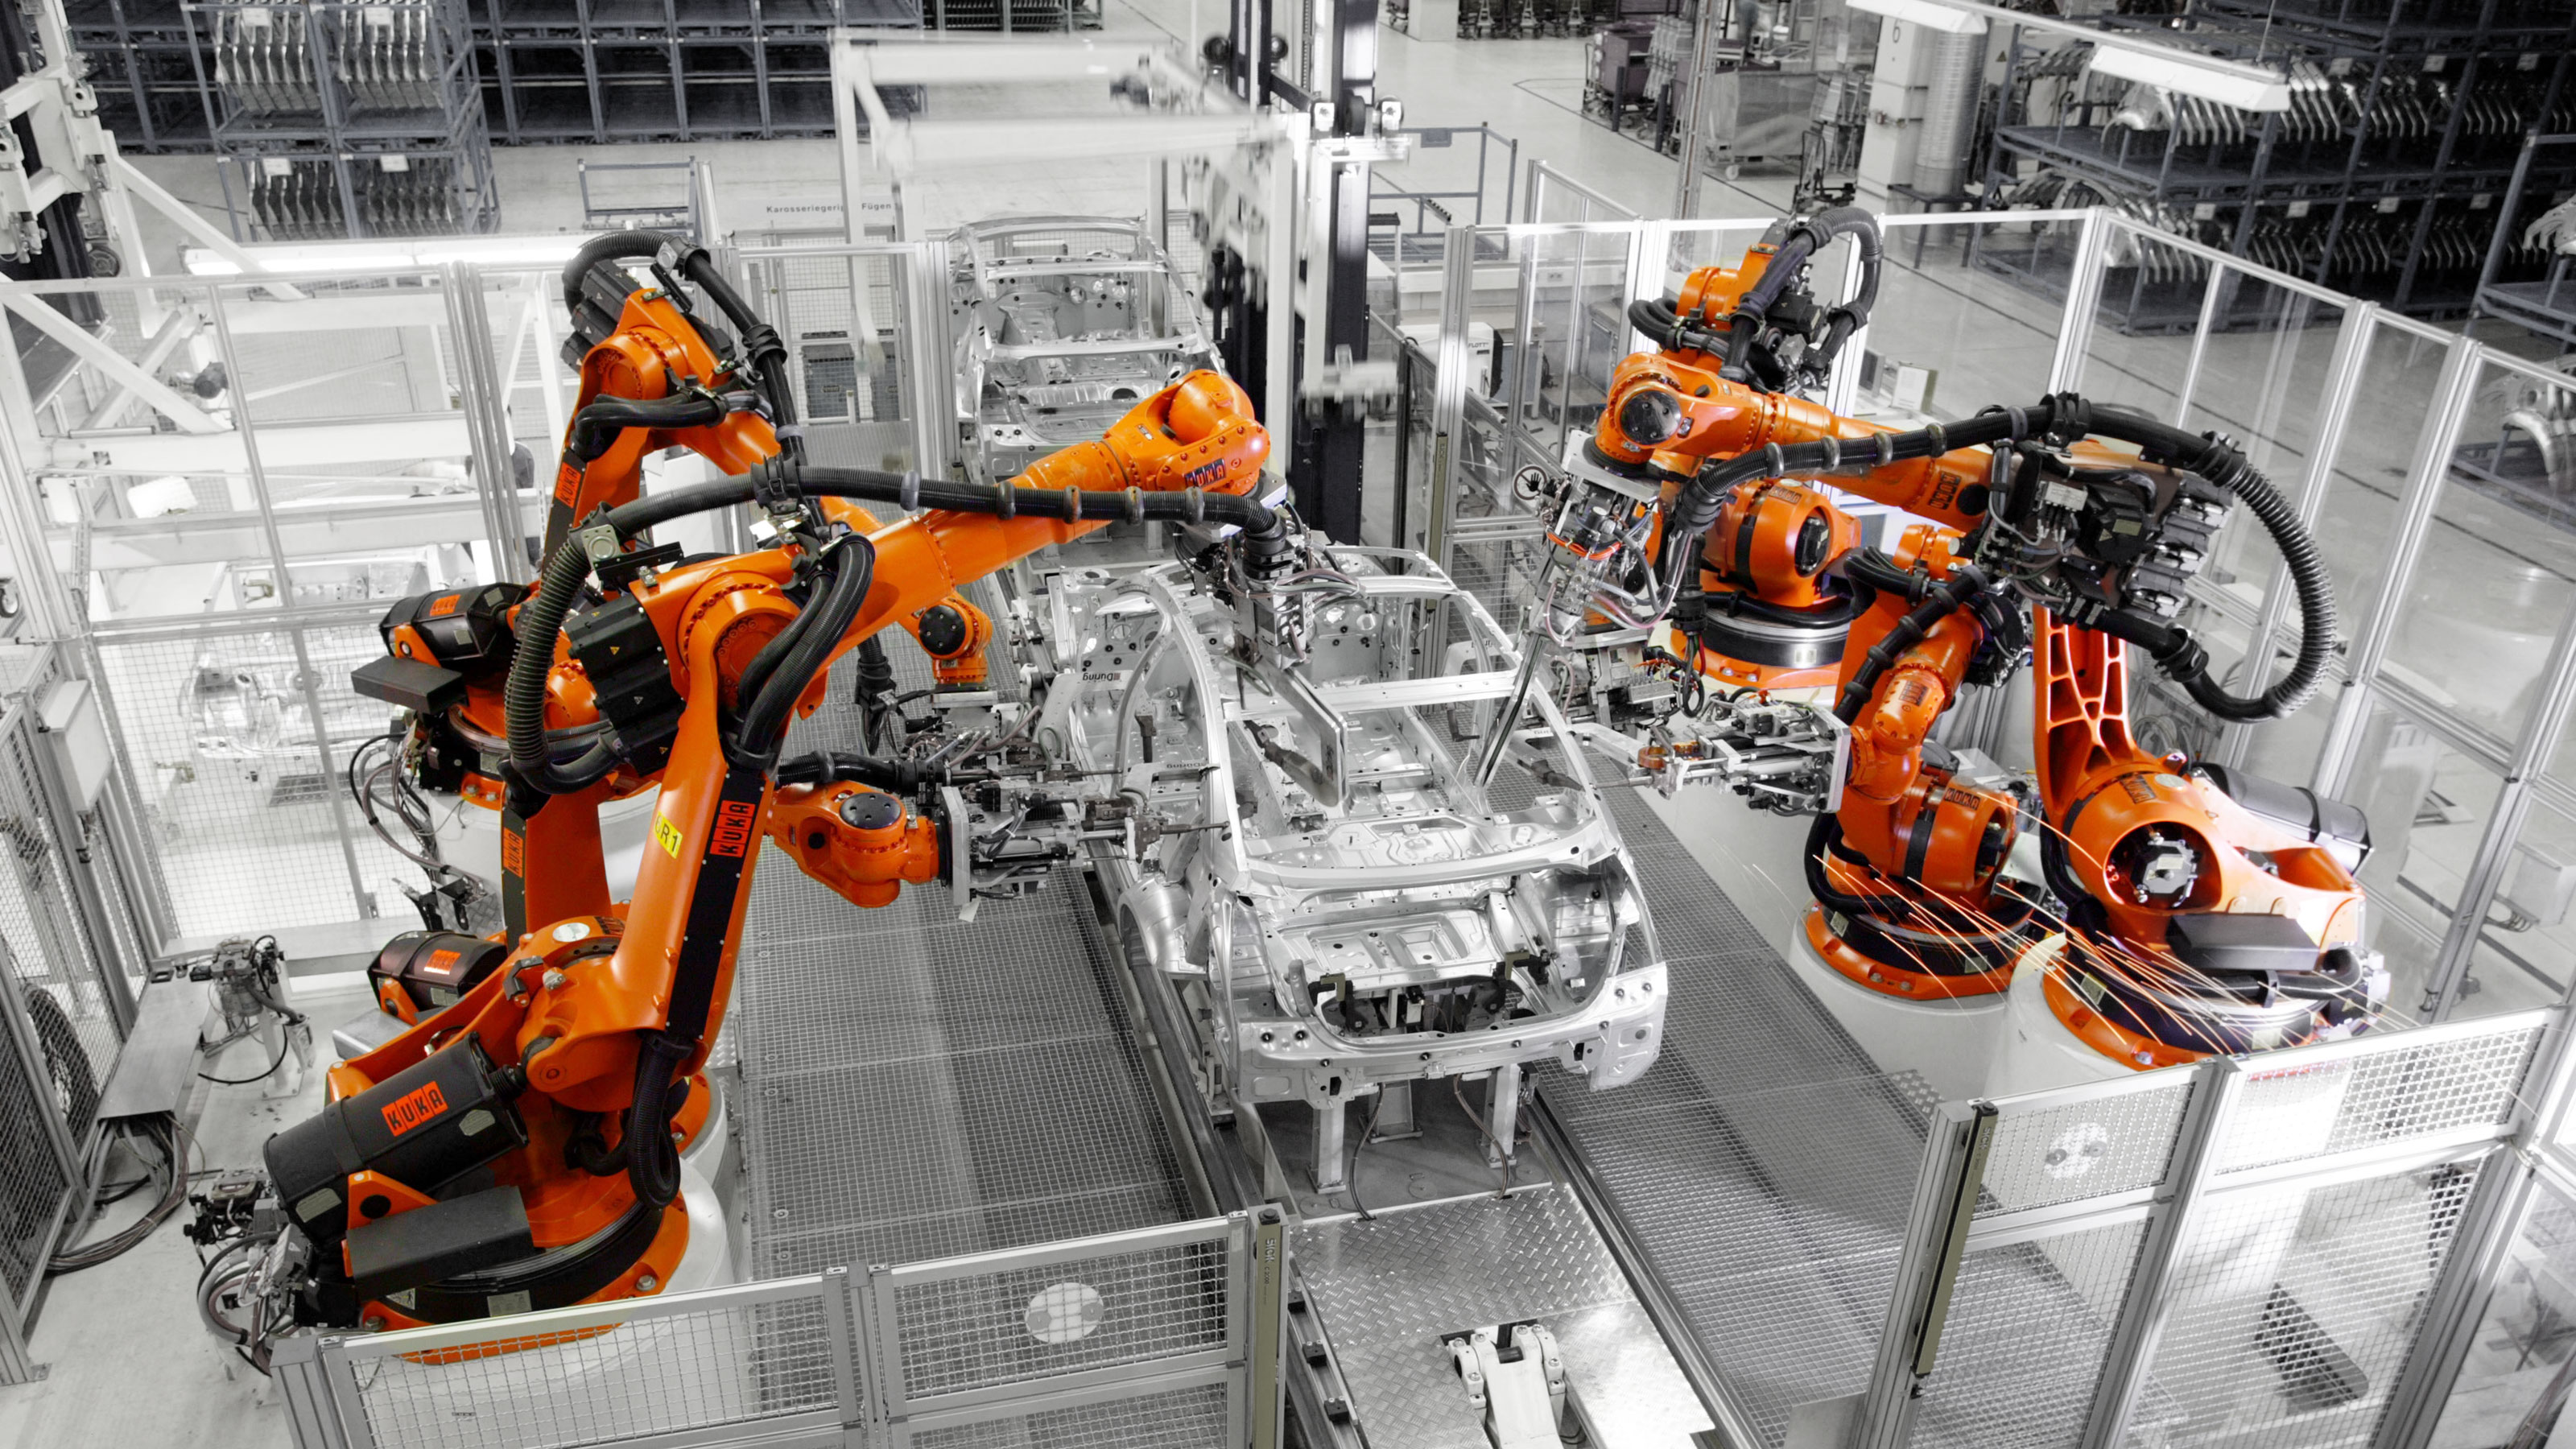 Automotive Robotics Market Outlook 2021: Big Things are Happening | ABB, Comau, DENSO WAVE INCORPORATED, FANUC CORPORATION